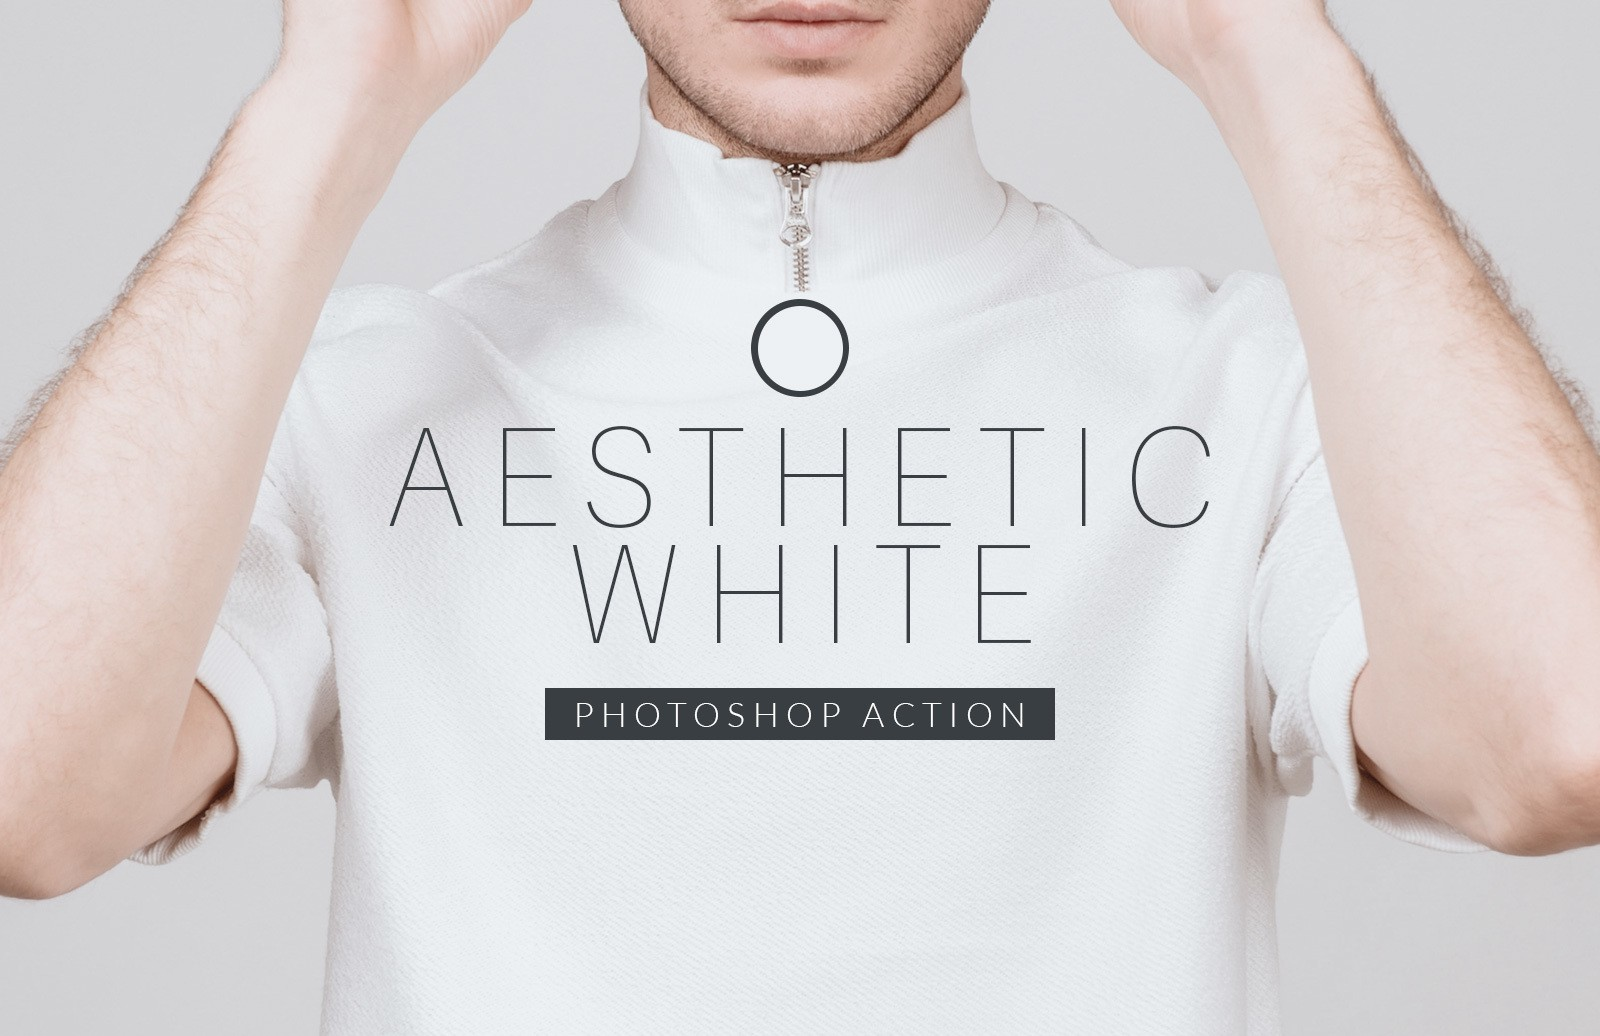 Aesthetic White Photoshop Action Preview 1